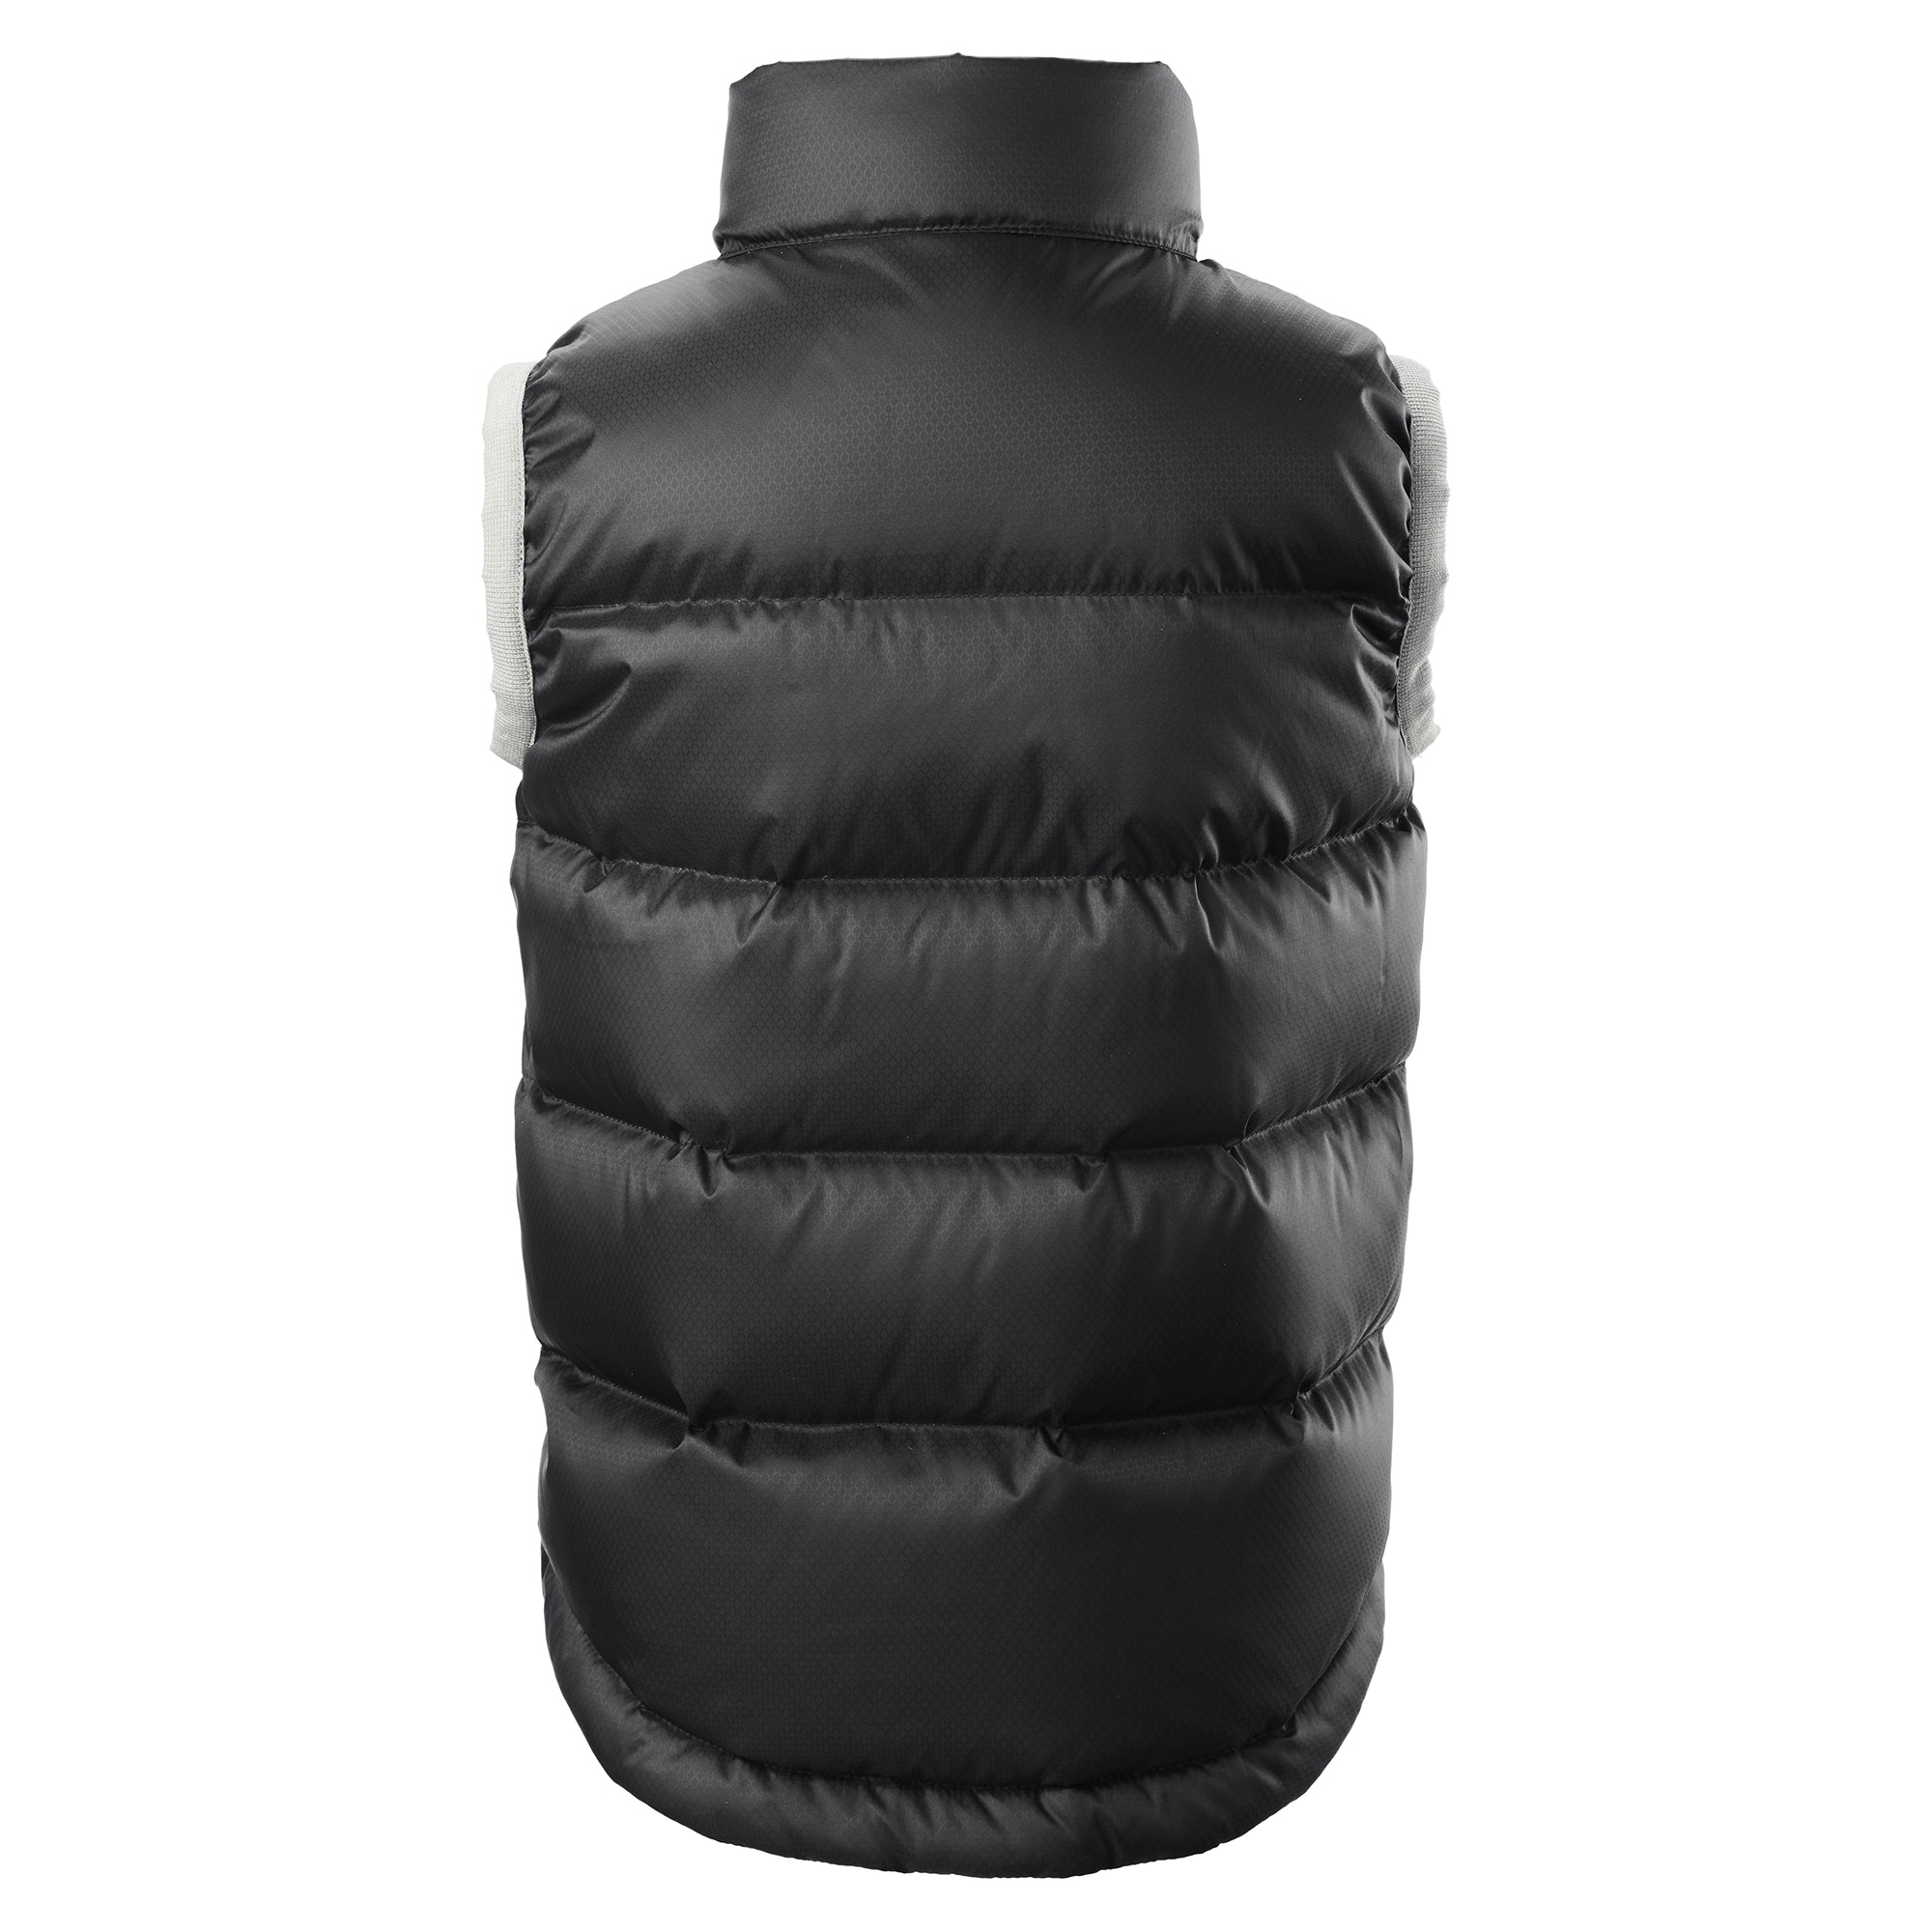 NEW-Kathmandu-Elcho-Kids-039-Boys-039-Girls-039-Warm-Winter-Outdoor-Duck-Down-Puffer-Vest thumbnail 5